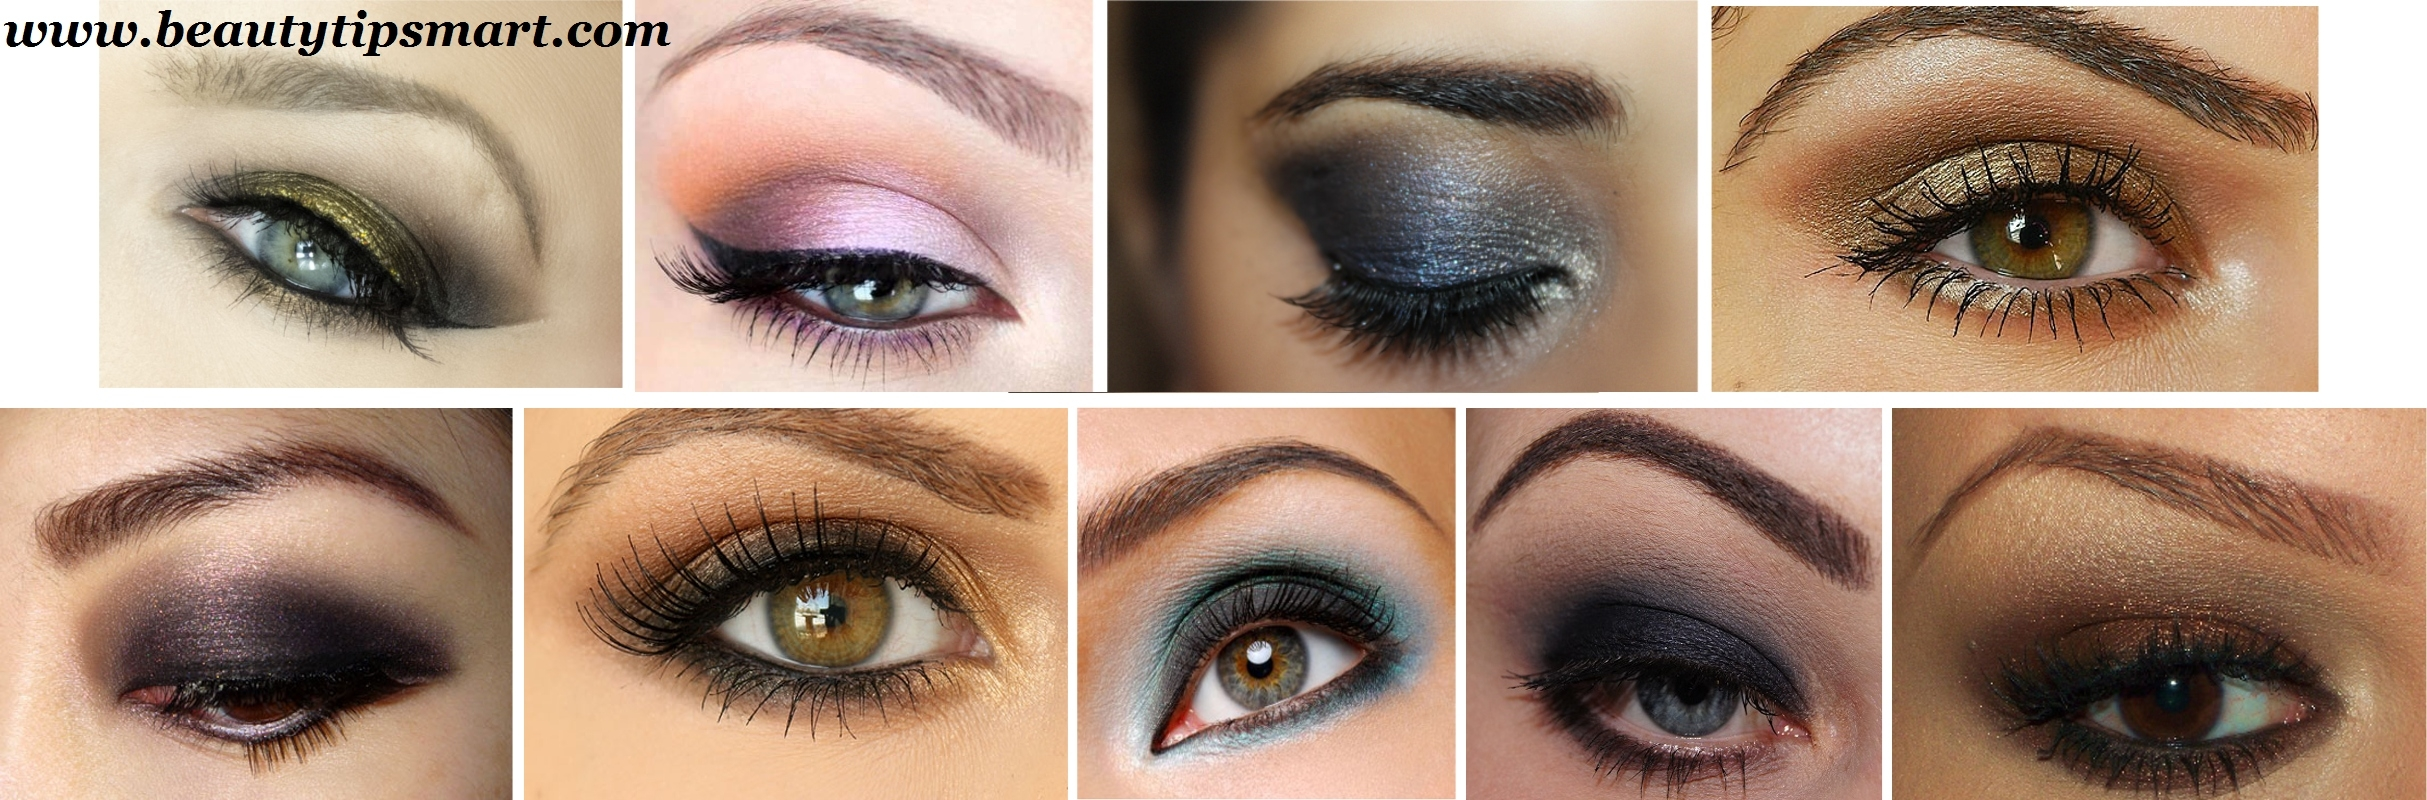 Impressive Best Eyeshadow Color For Green Eyes #4 Best Color regarding Best Eyeshadow Color For Hazel Green Eyes